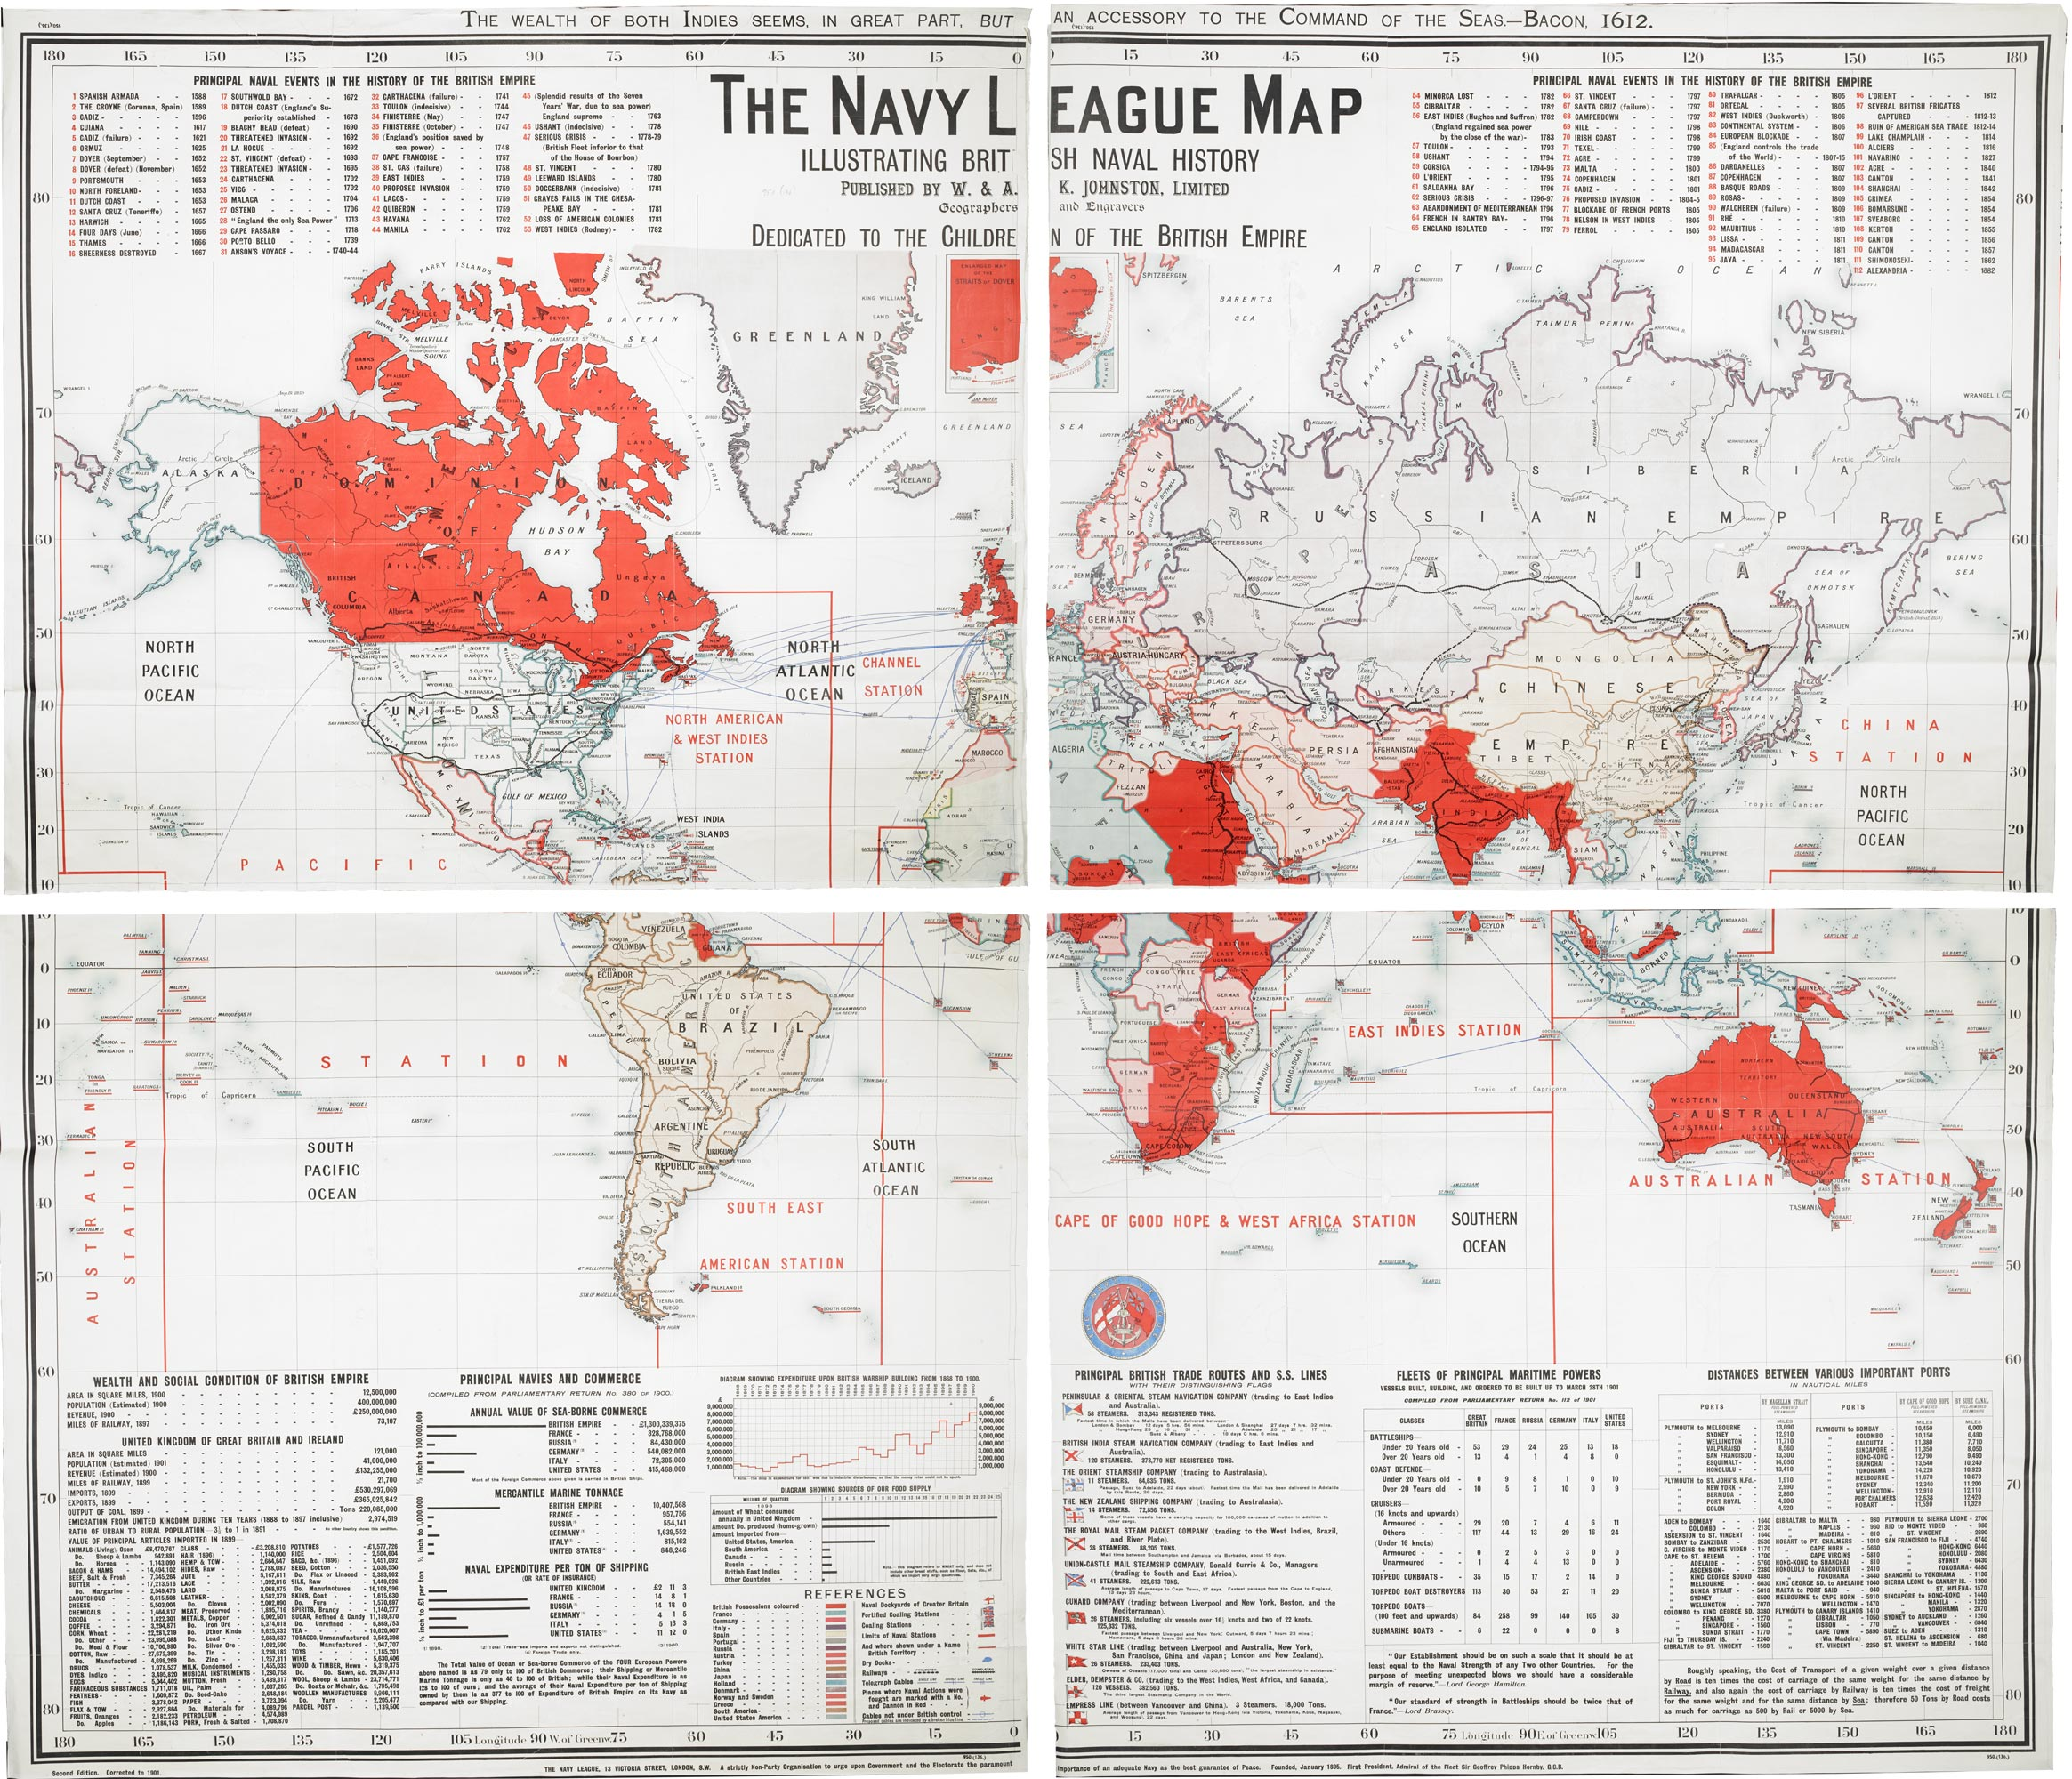 The Navy League map (Maps 950.(136.))